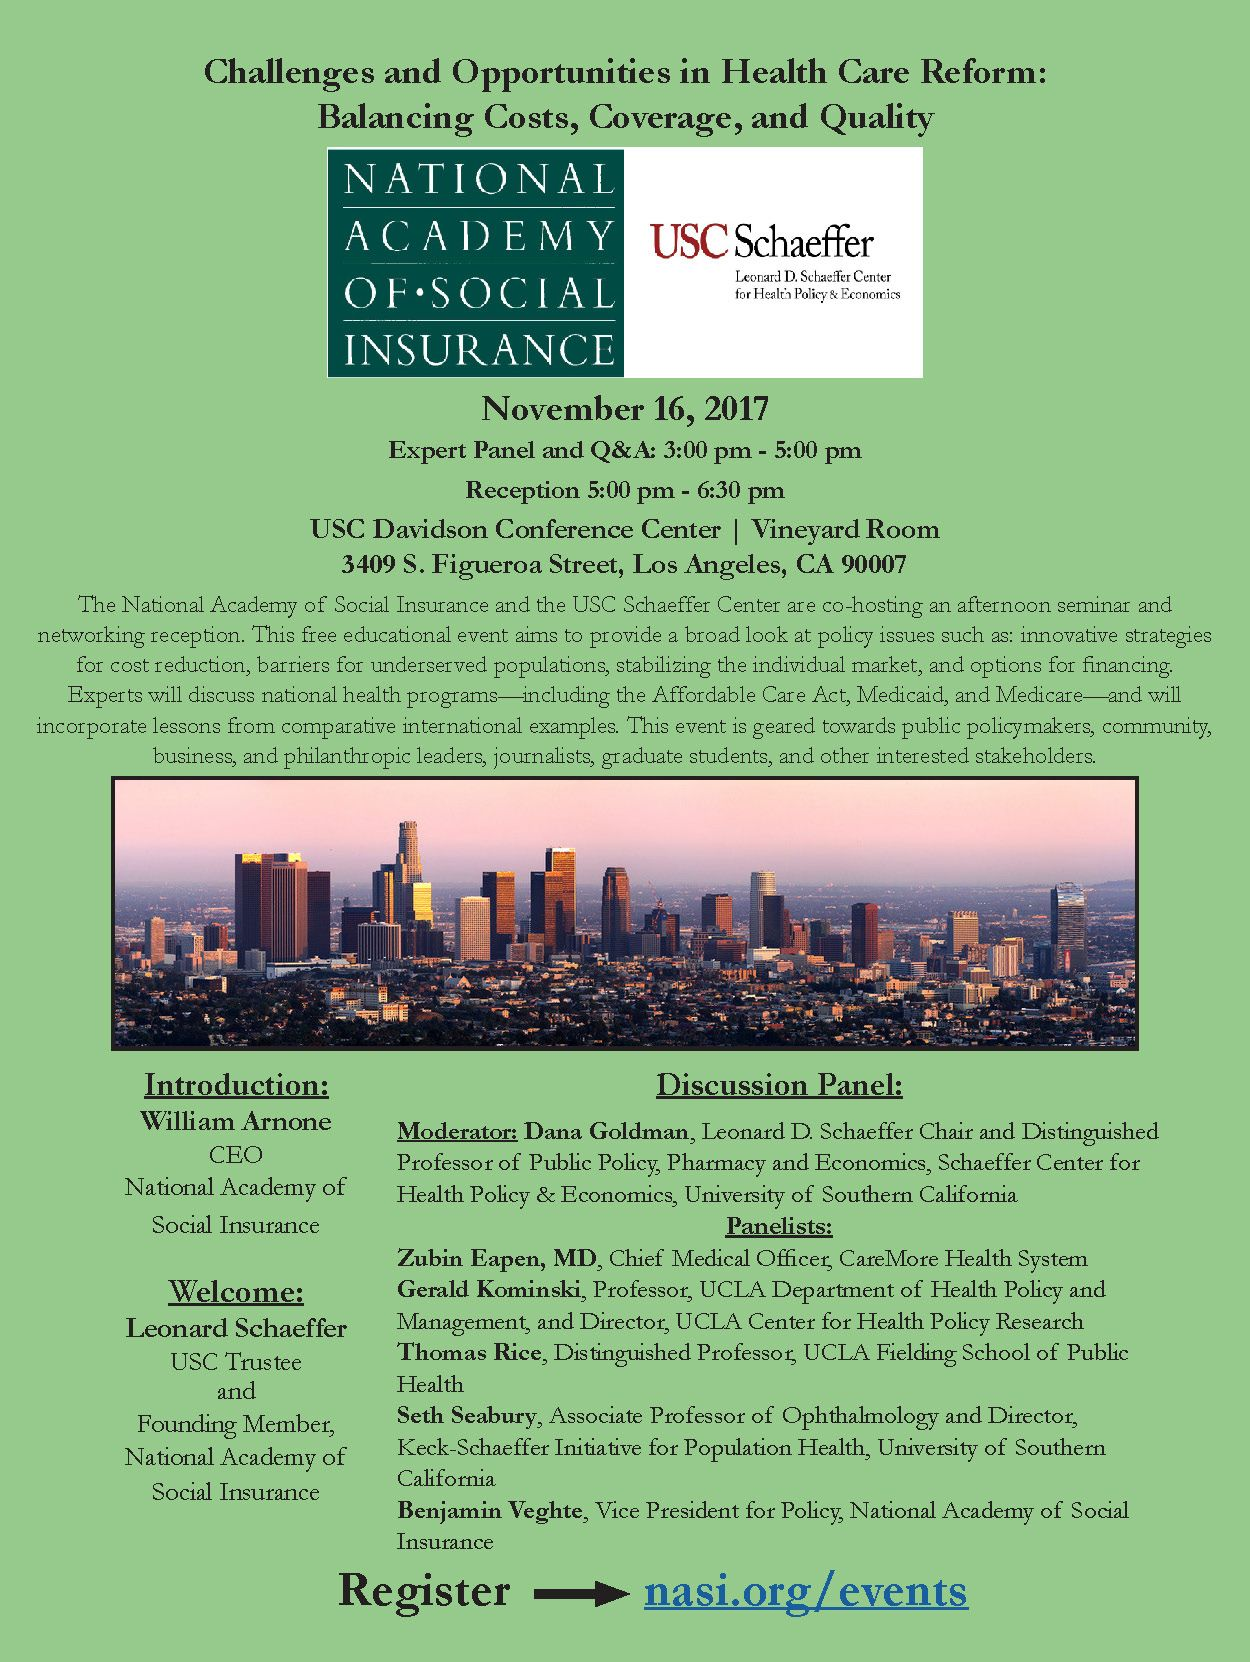 How can #health disparities be addressed in our society? Register for our seminar with the USC Schaeffer Center in LA on 11/16.